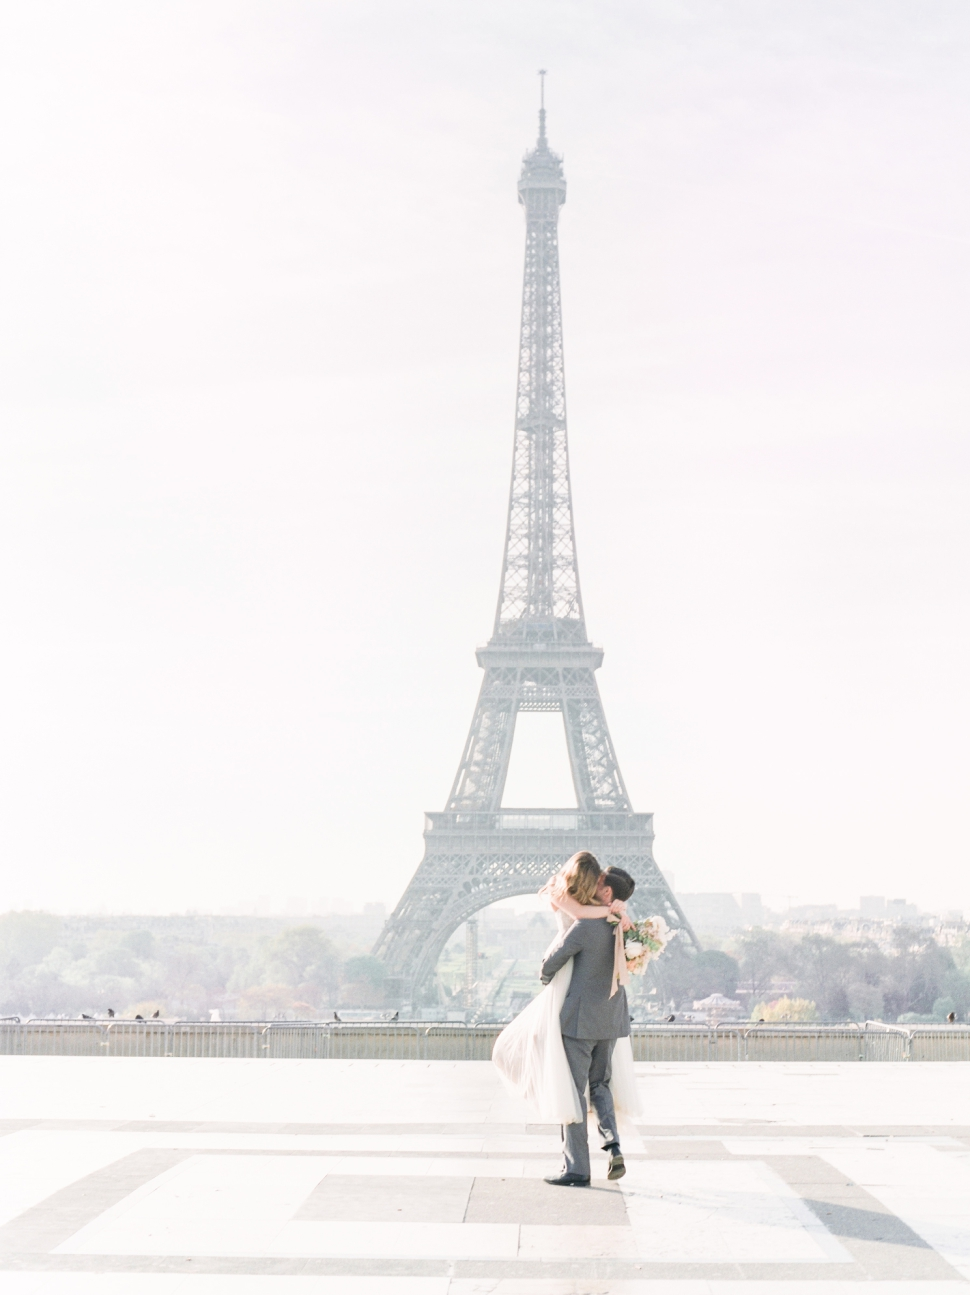 Paris-France-Destination-Wedding-Photographer-Cassi-Claire-Shangri-La-Paris-Wedding-Photos_007.jpg